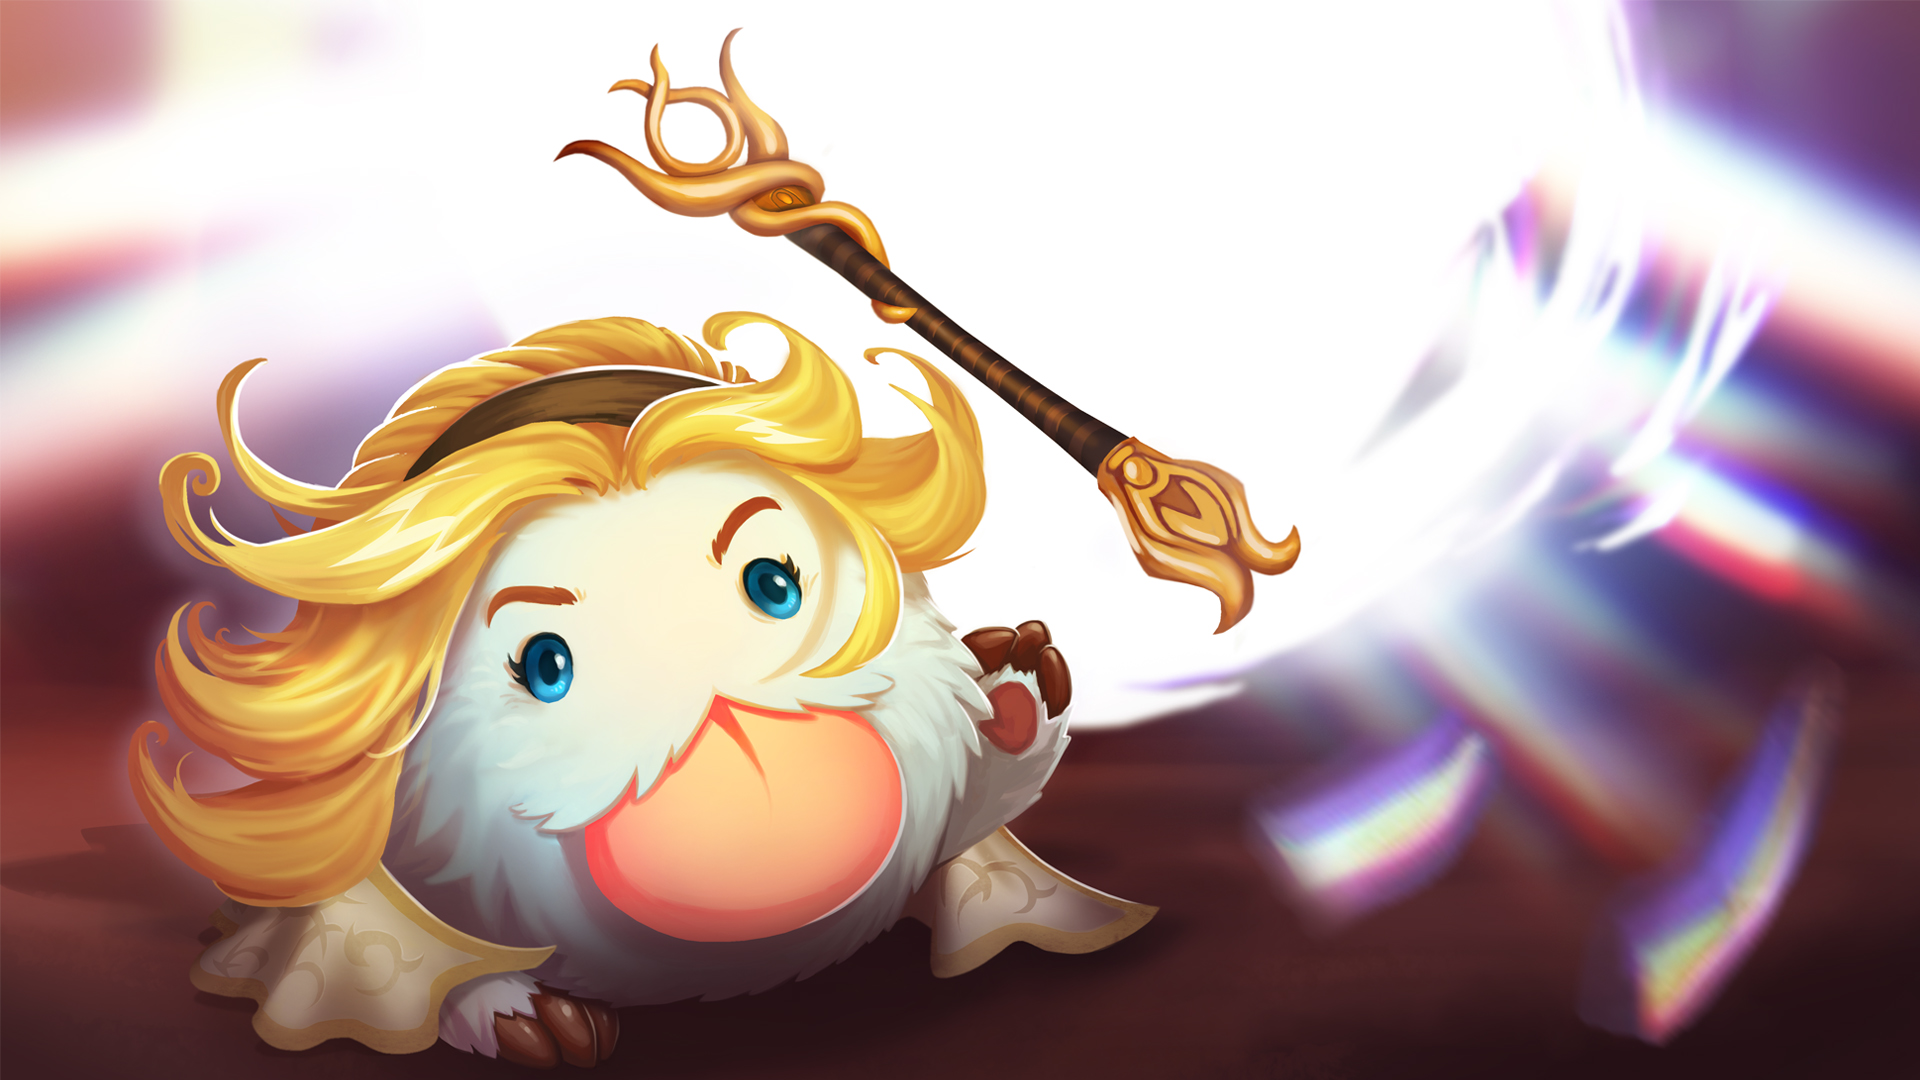 Lux Poro wallpaper